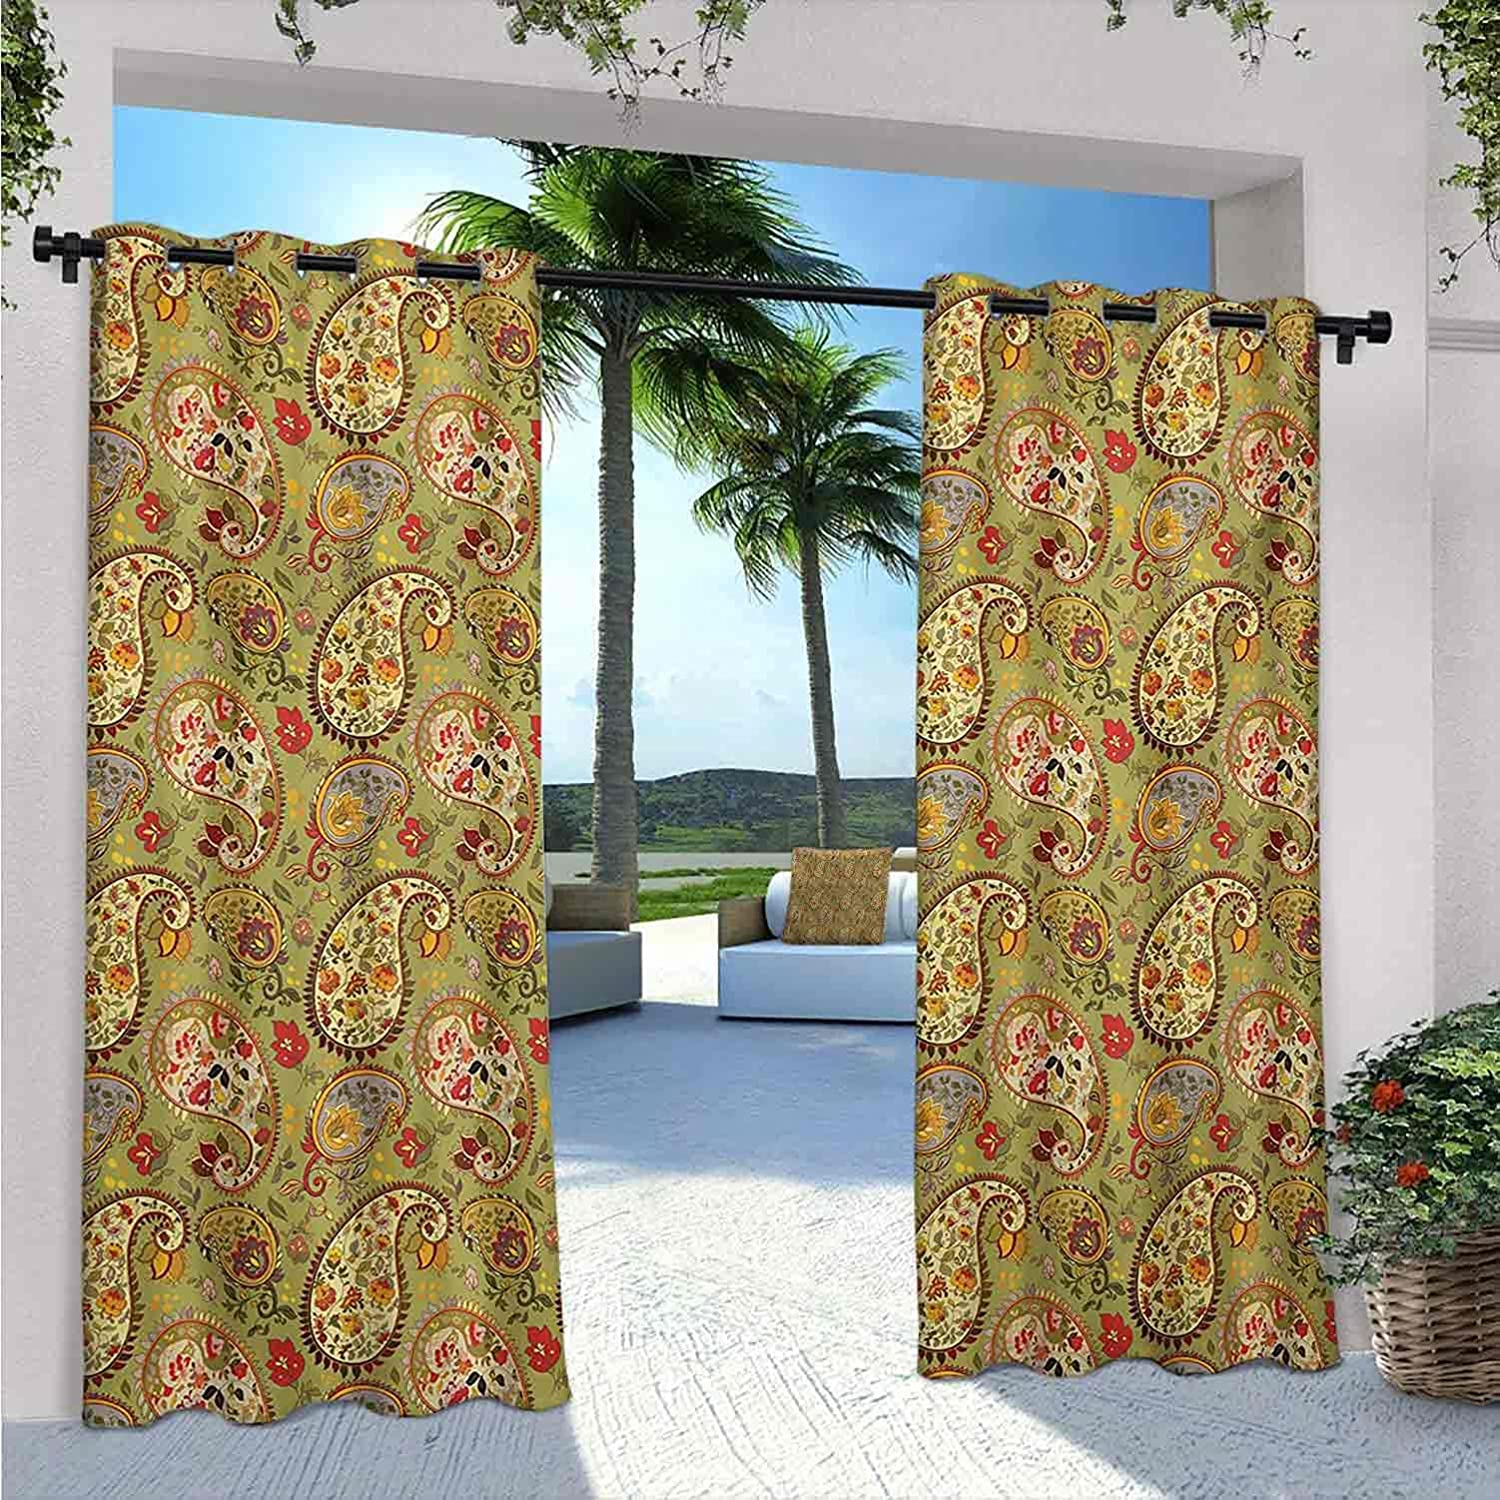 Paisley Waterproof Indoor Outdoor Curtains A Patio Choice Translated Colorful for